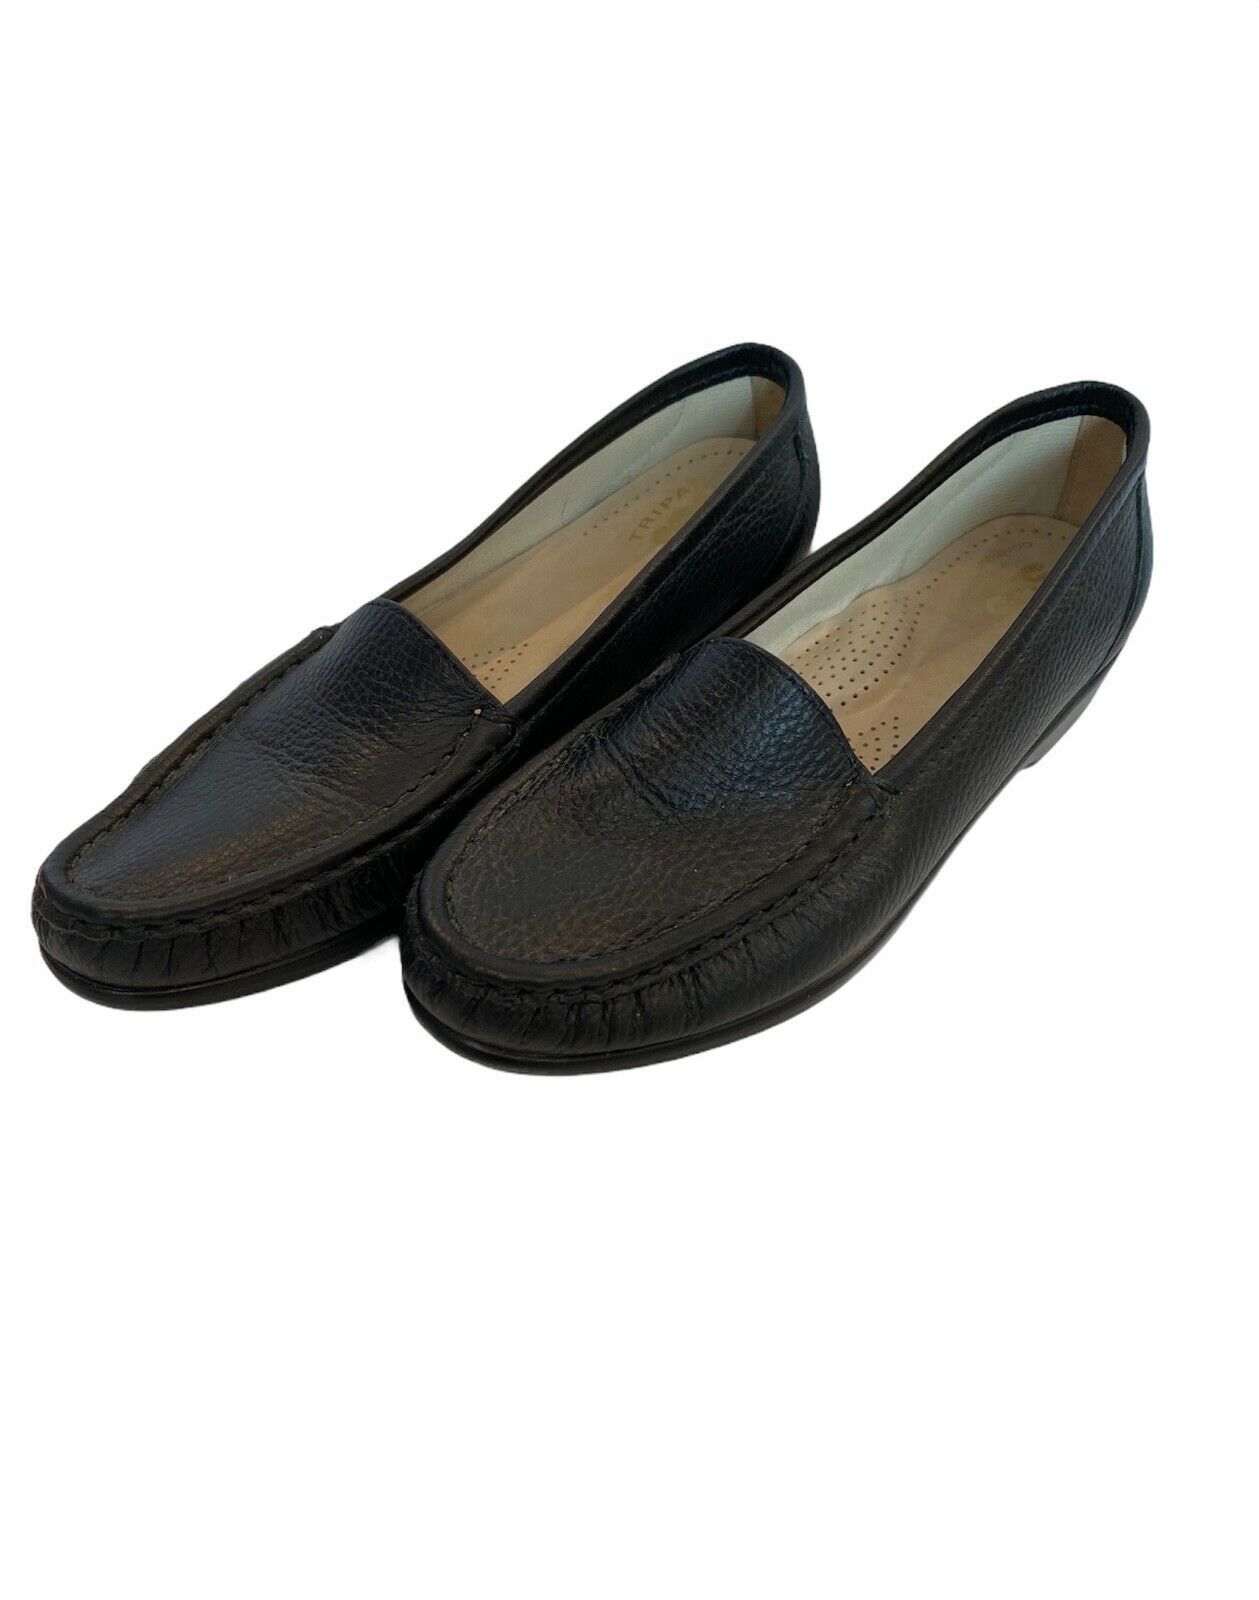 SAS Women's Simplify Slip On Black Leather Comfort Driving Loafer Shoes Size 6.5